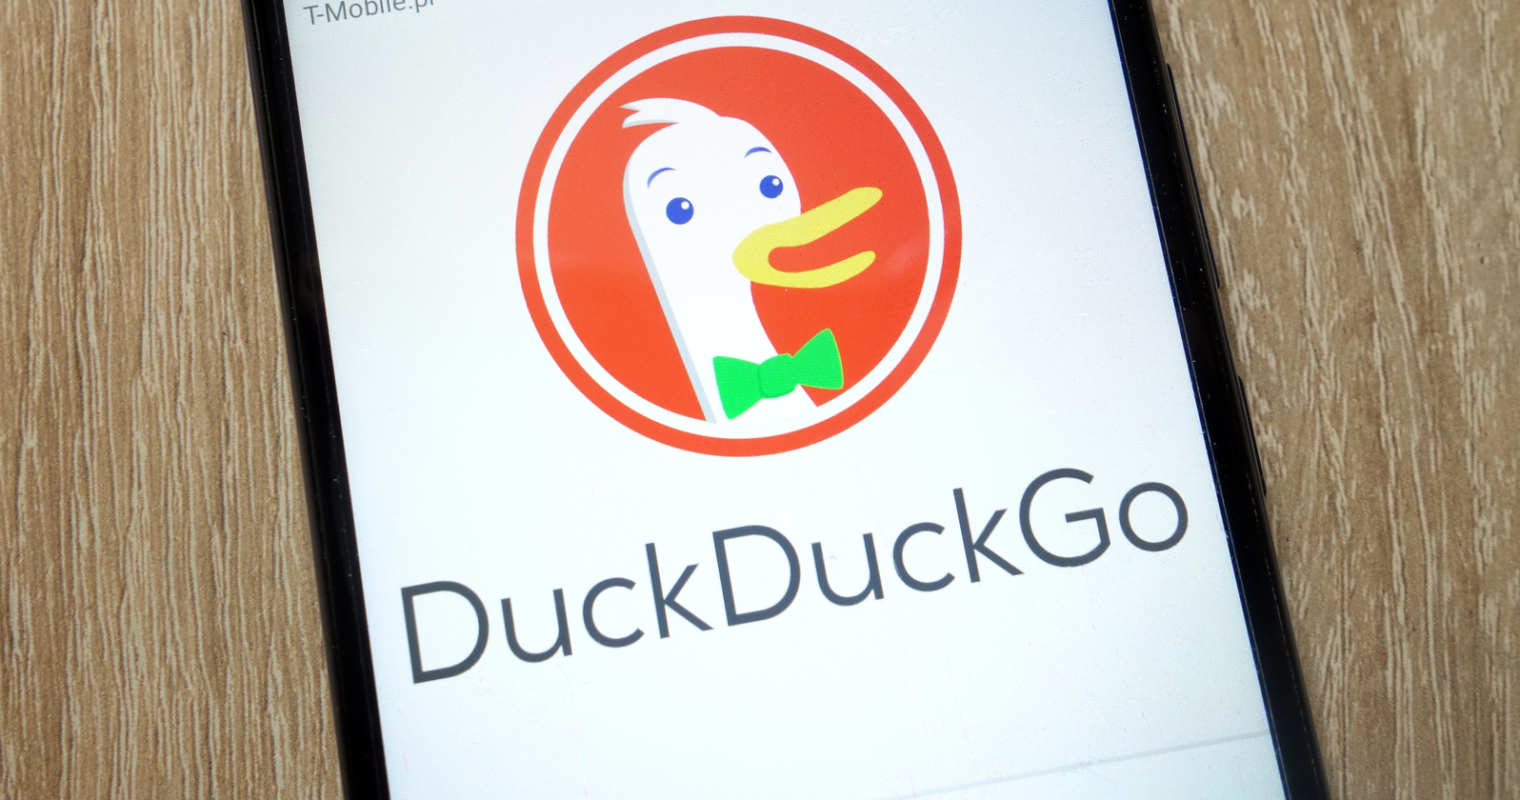 DuckDuckGo Hits a Record 1 Billion Monthly Searches in January 2019